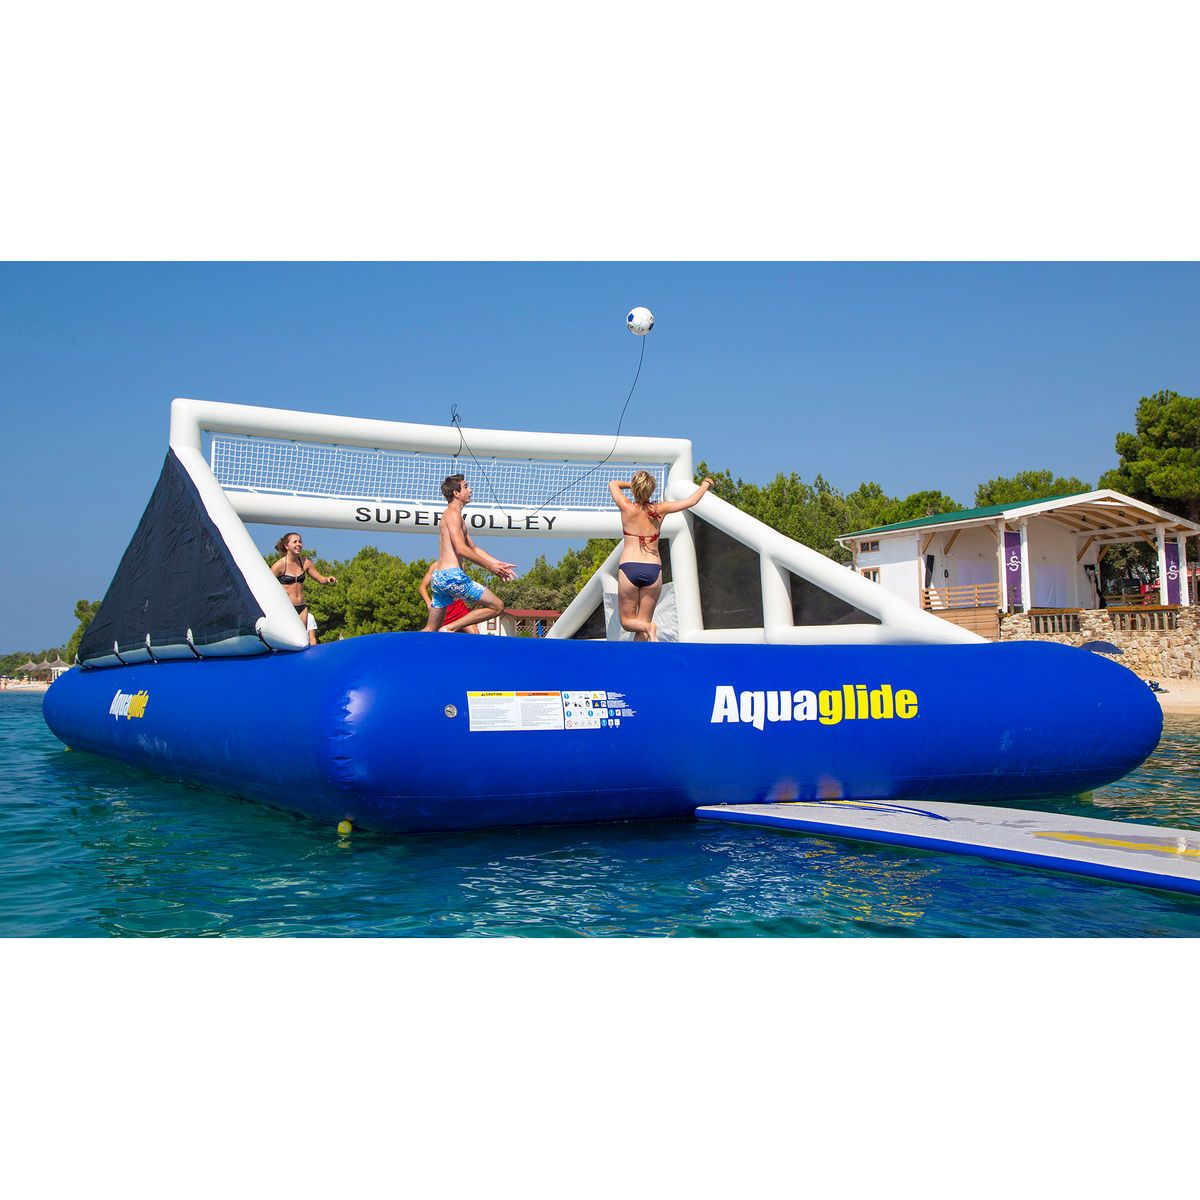 Aquaglide Supervolley Floating Volleyball Court With Supertramp 35 Trampoline Water Volleyball Floating In Water Lake Toys